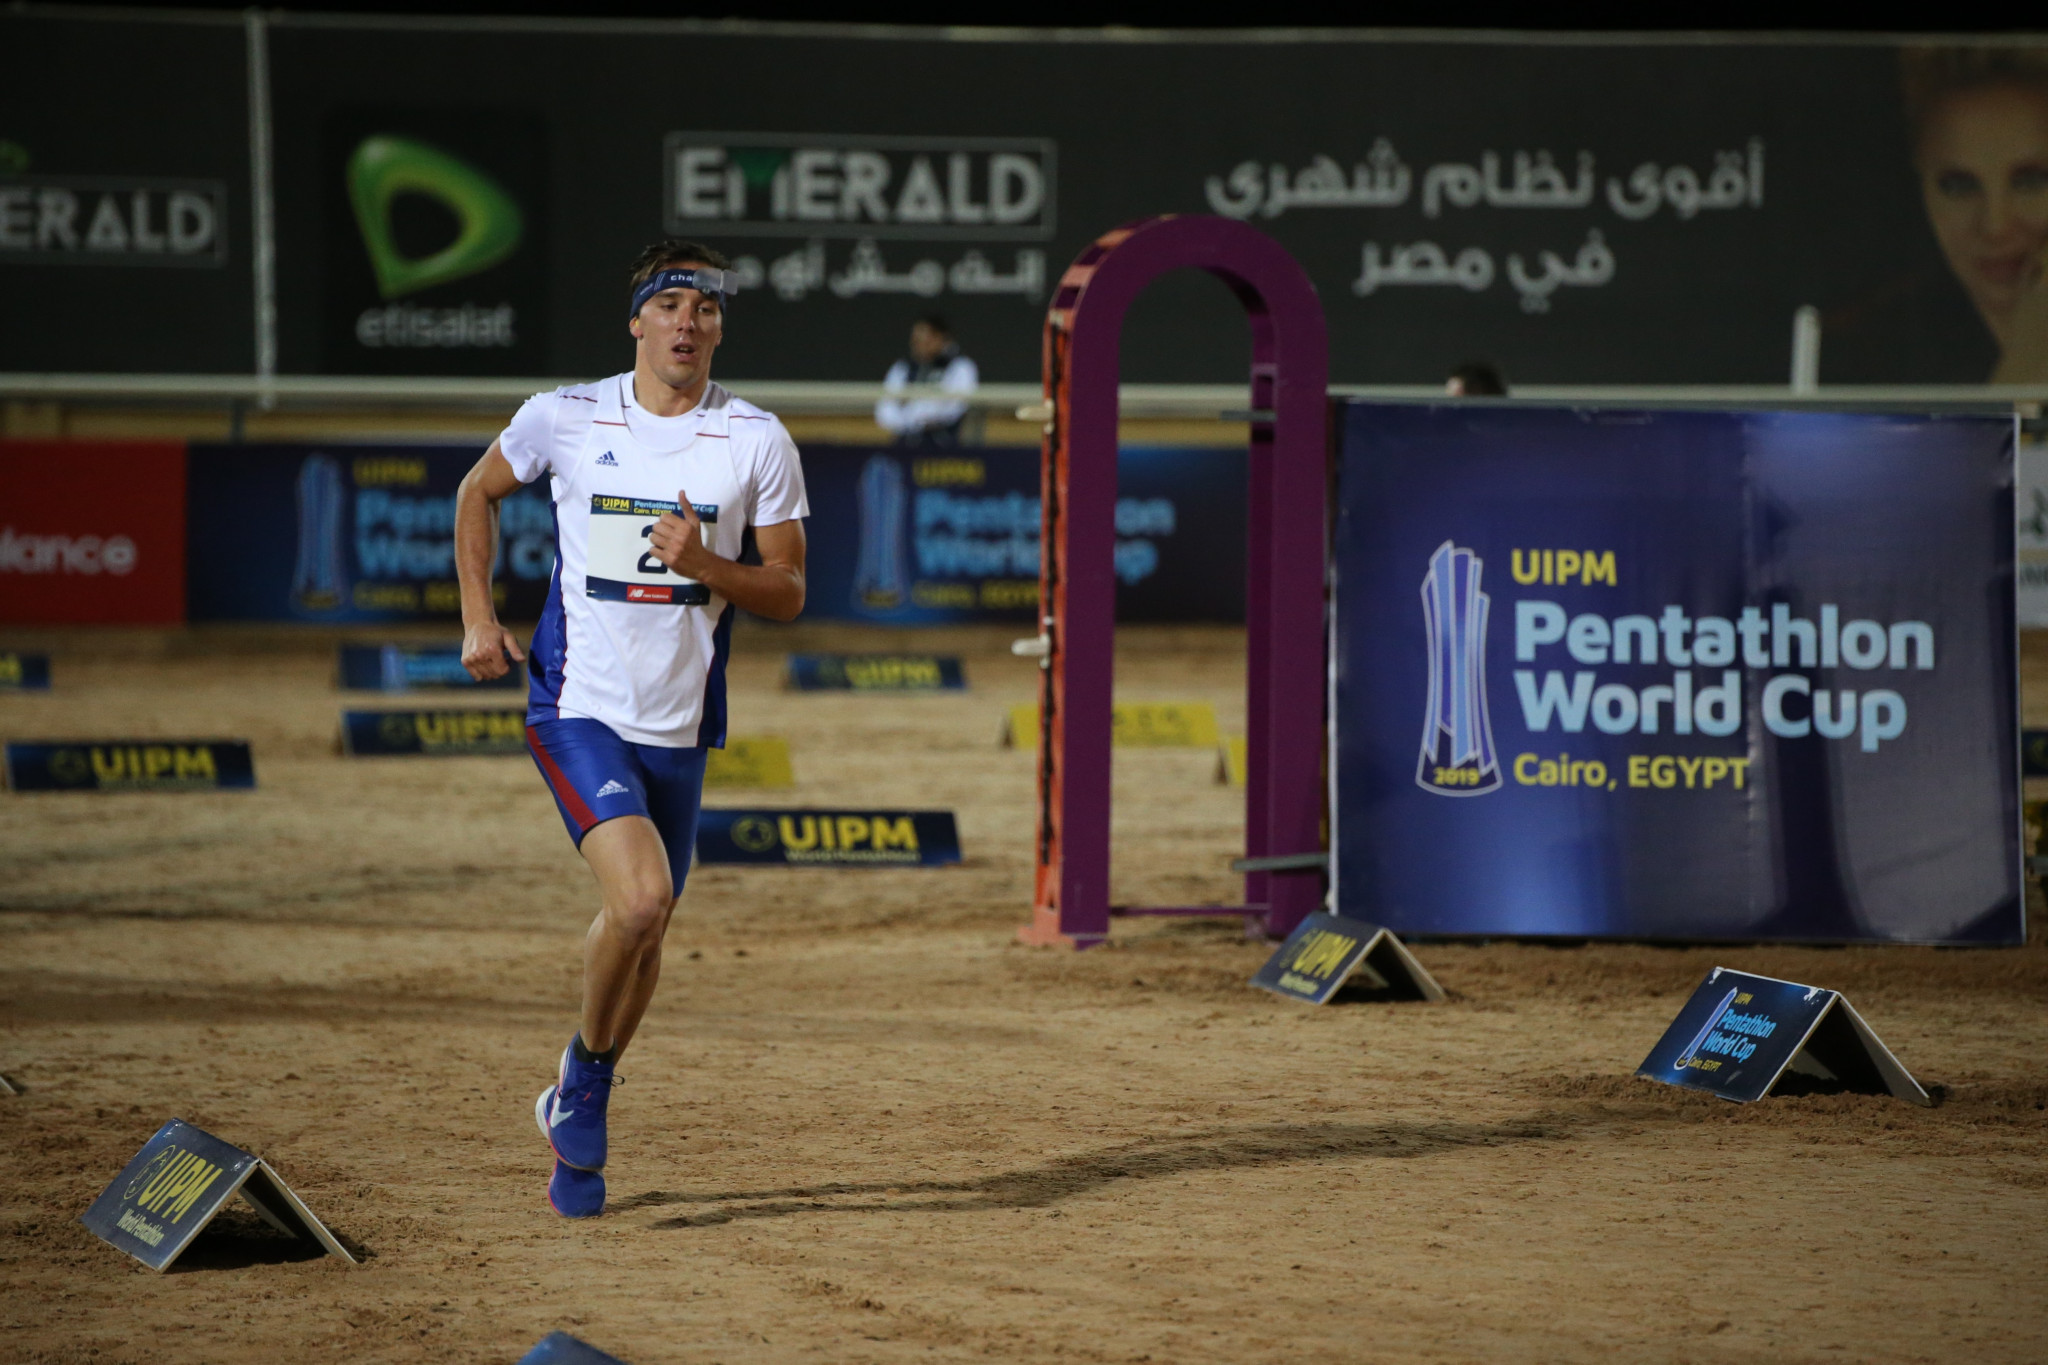 Czech Republic's Jan Kuf finished in the runners-up spot ©UIPM